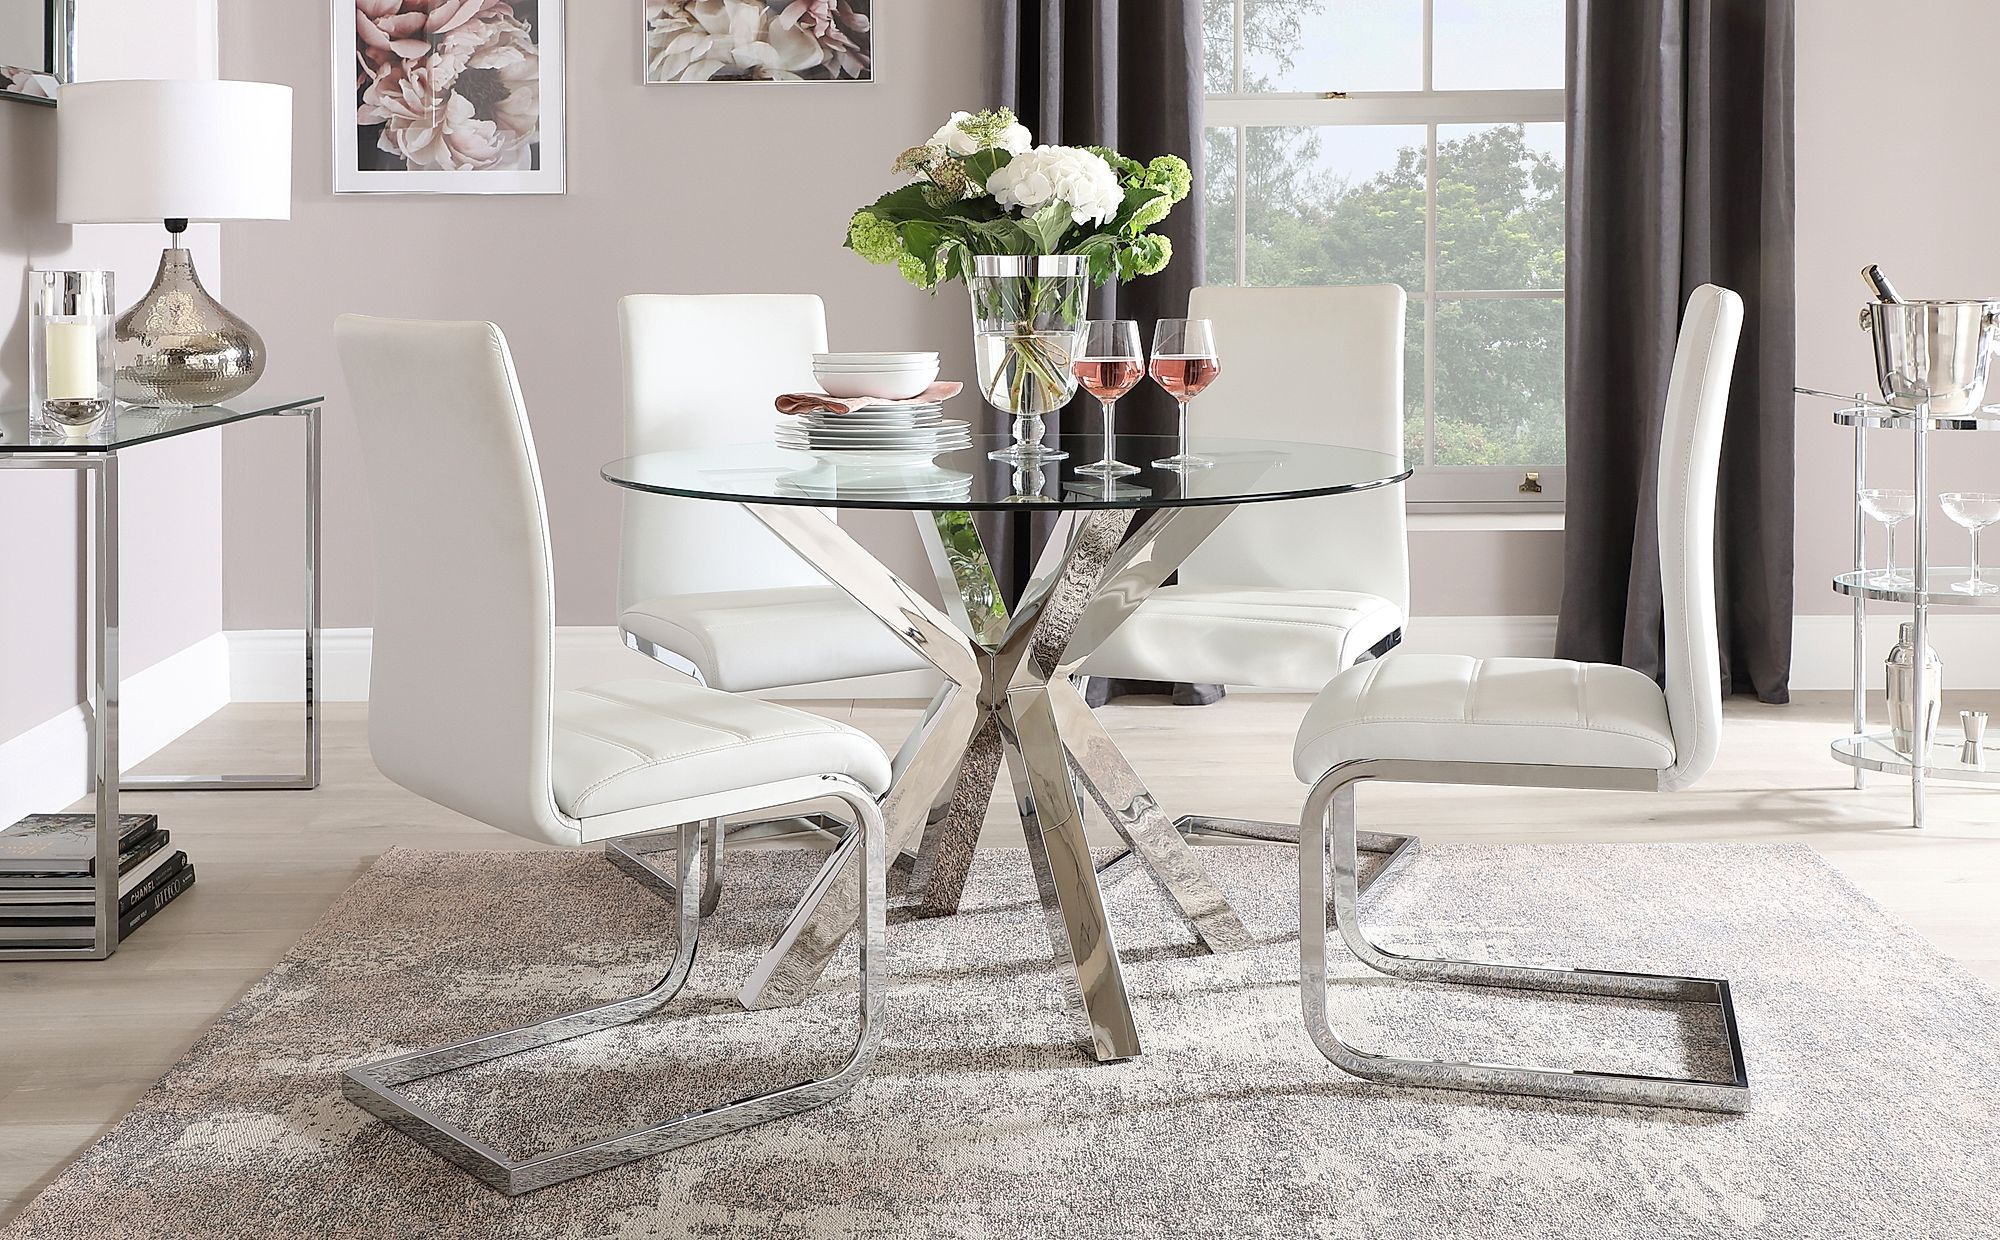 Plaza Round Chrome And Glass Dining Table With 4 Perth White Leather Chairs In 2020 Glass Dining Table Dining Table Chairs Glass Round Dining Table